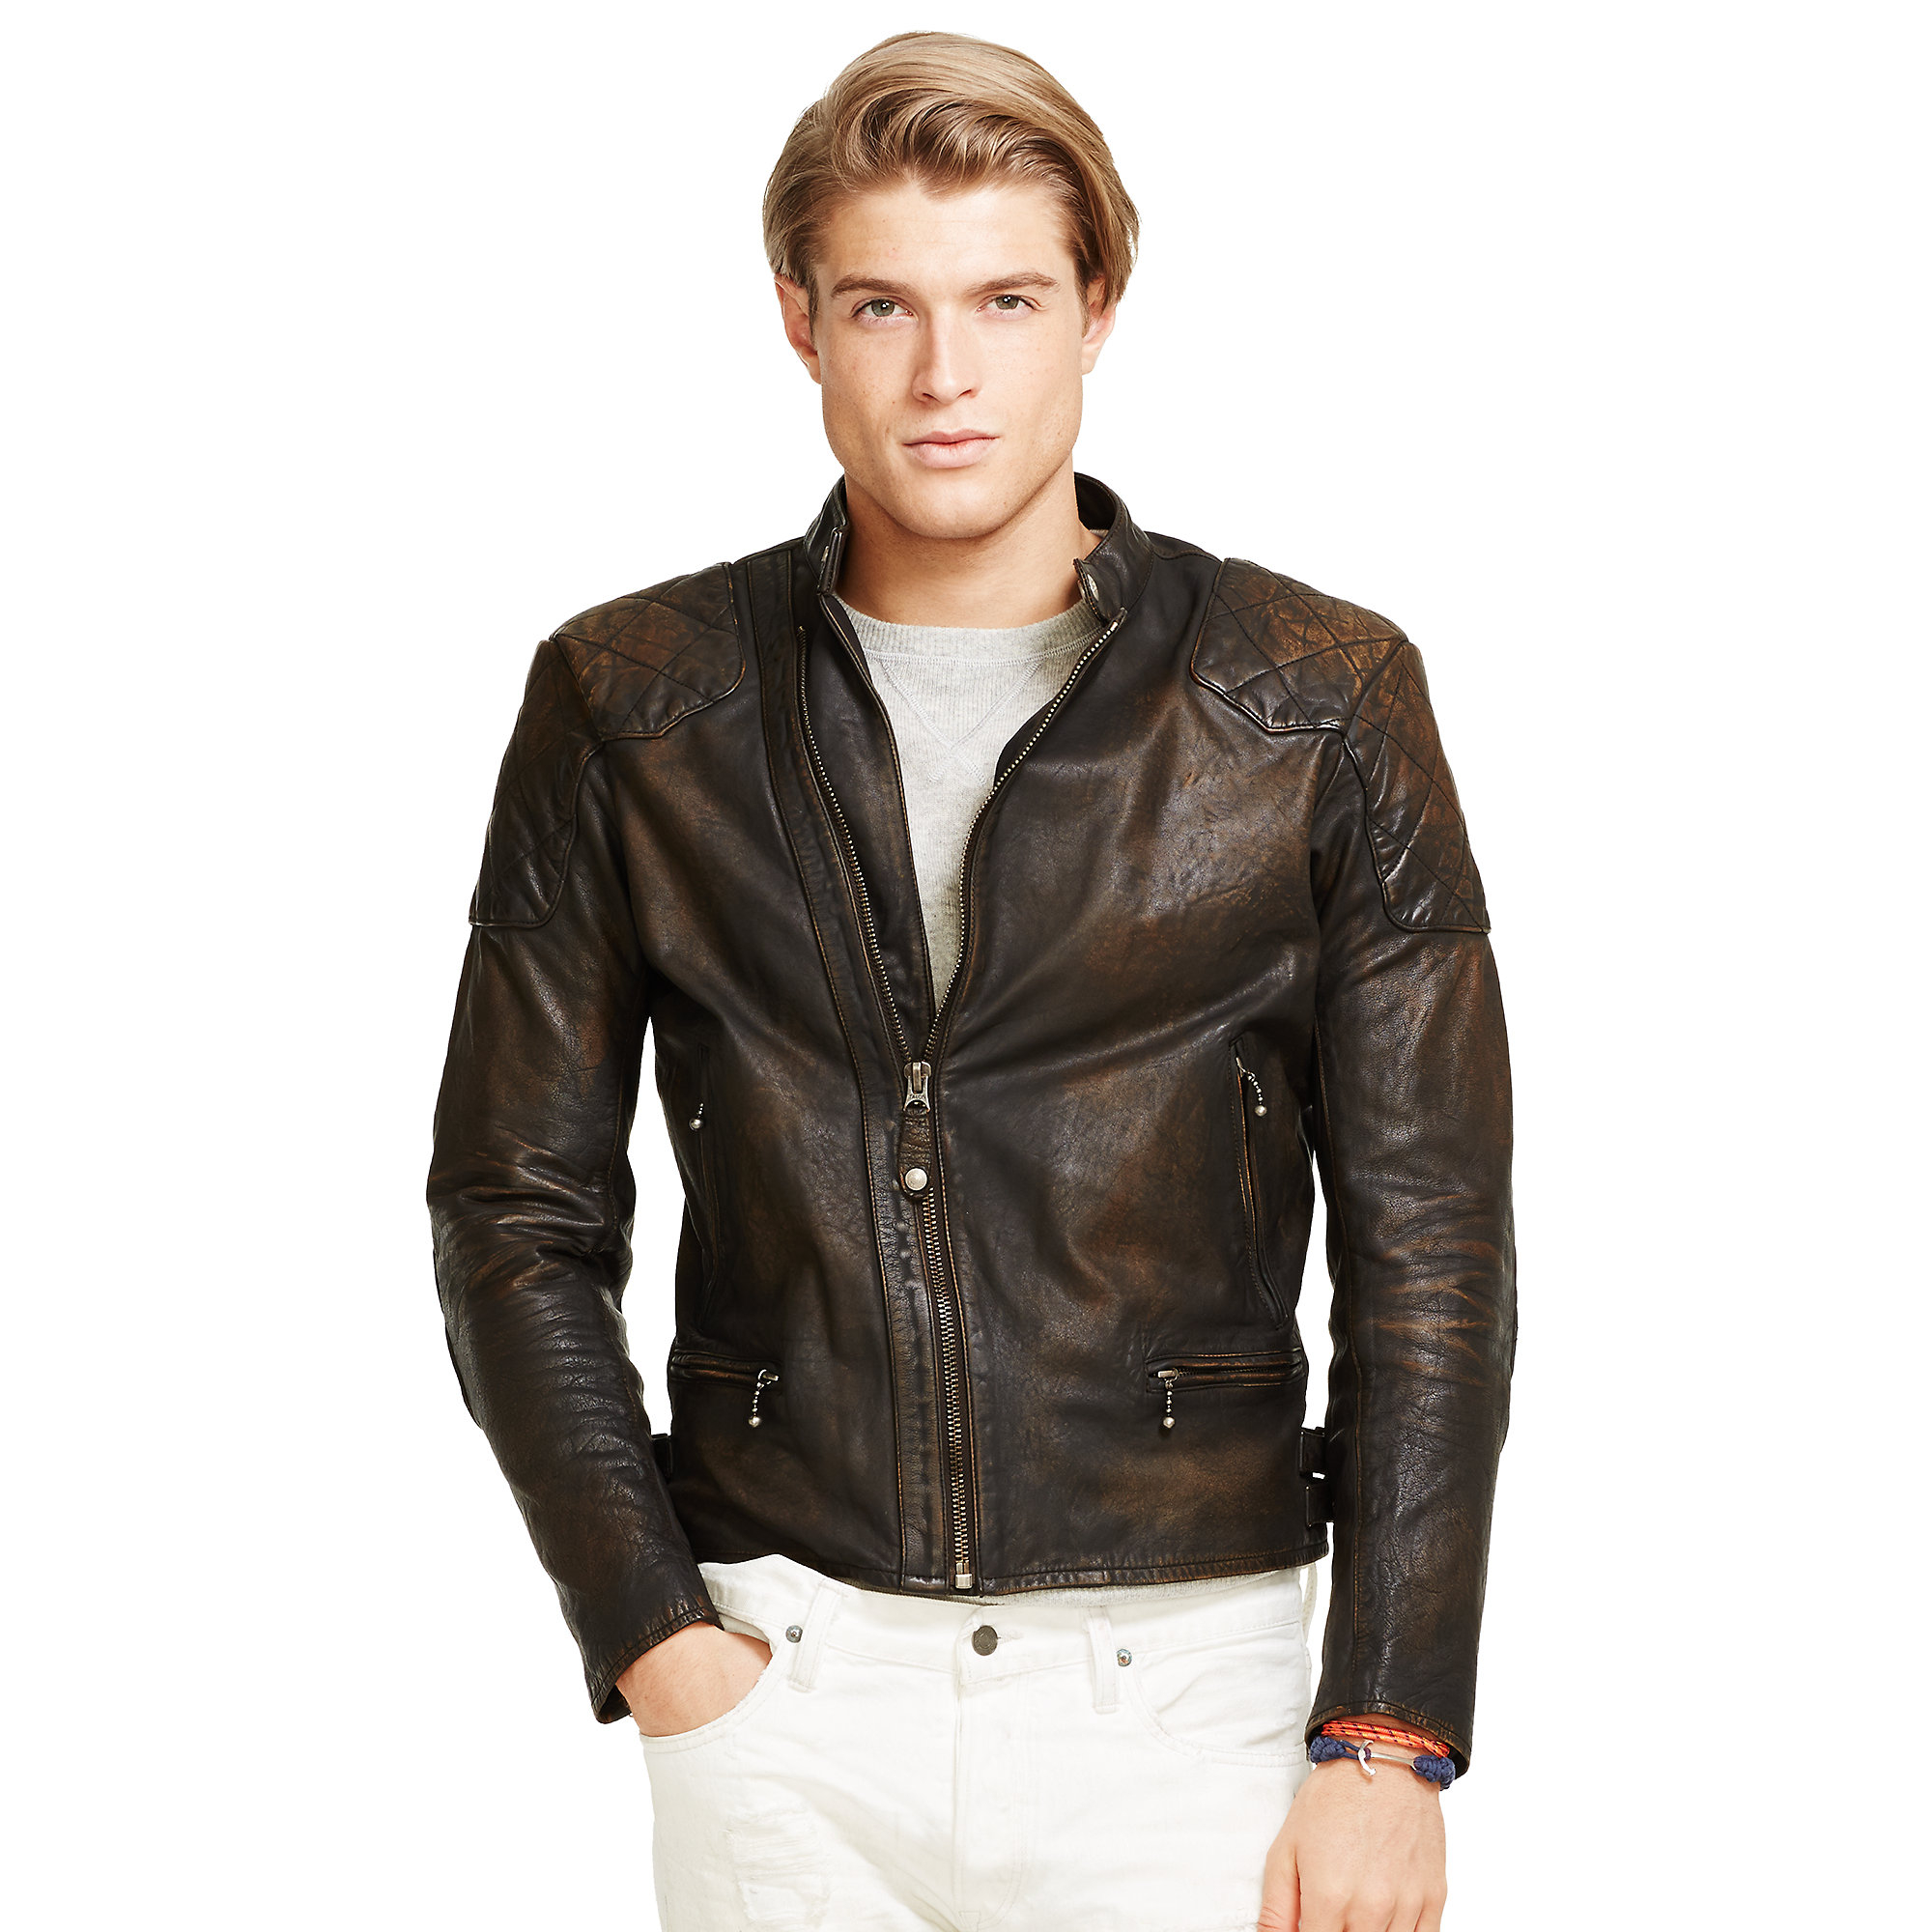 lyst polo ralph lauren leather caf racer jacket in. Black Bedroom Furniture Sets. Home Design Ideas